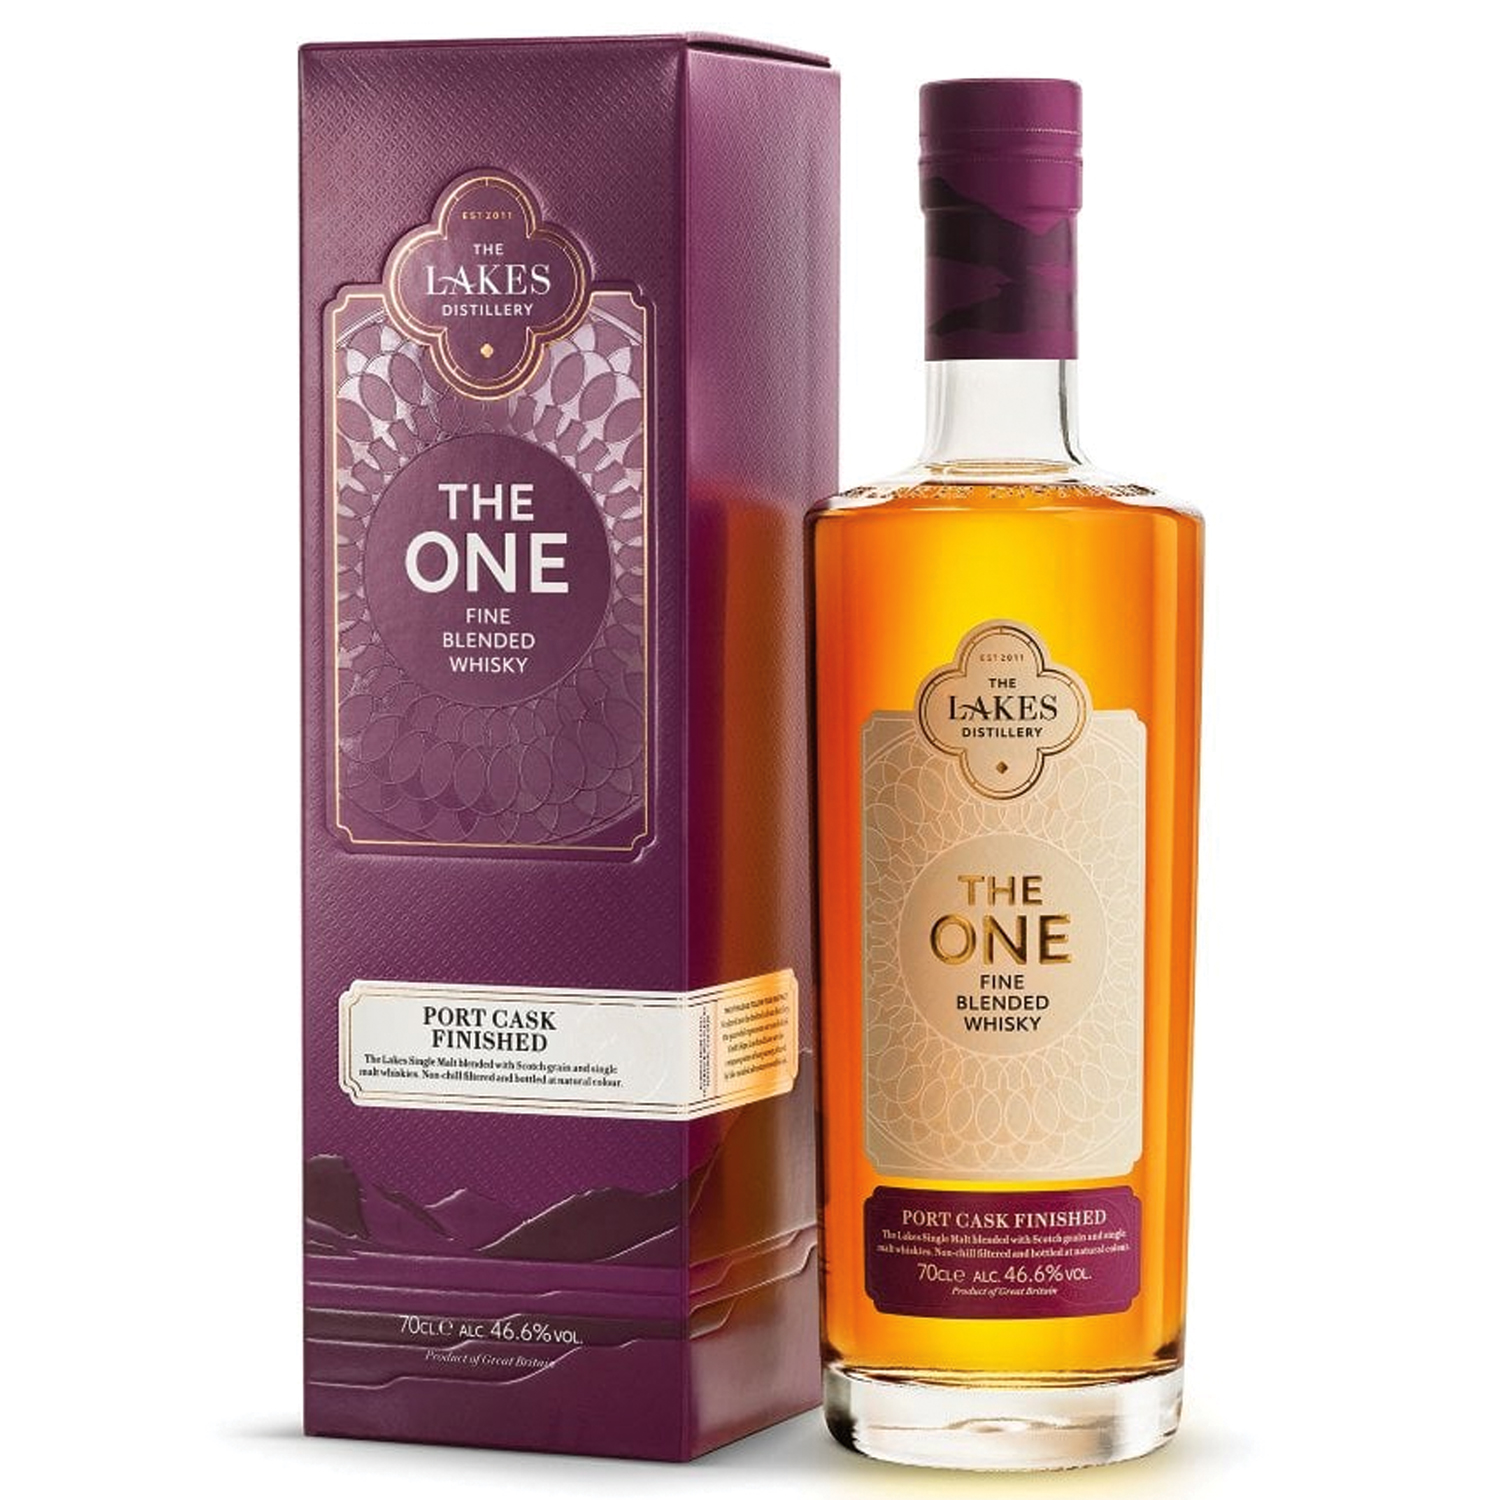 Whisky - The Lakes - The One - Port Cask Finished - Fine Blended - Angleterre